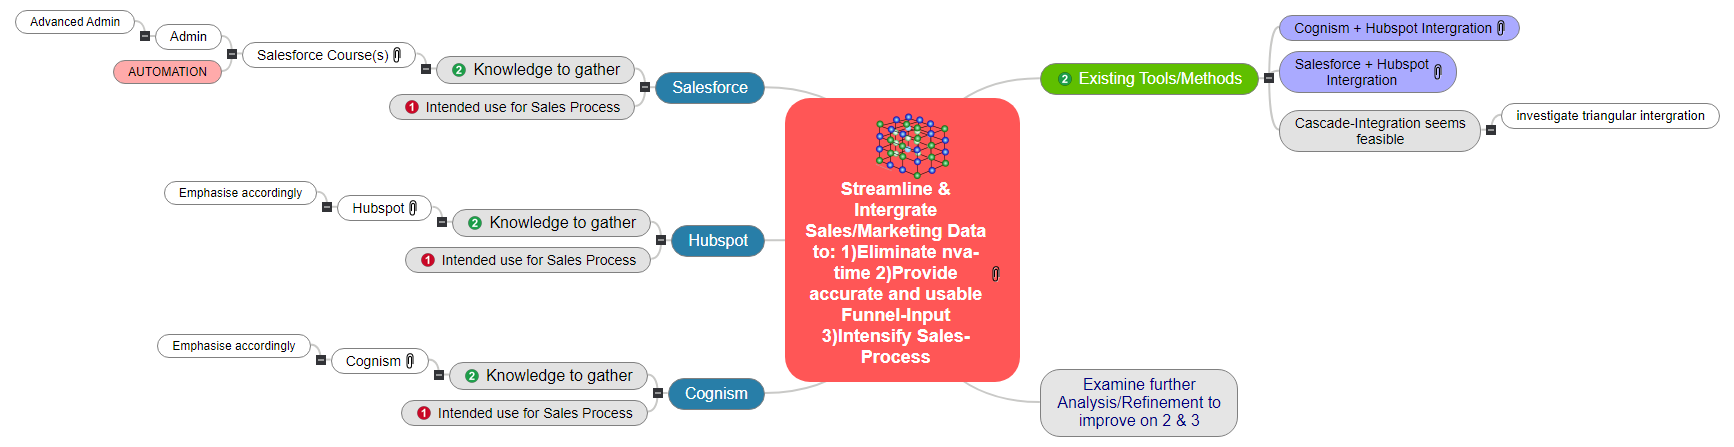 Streamline & Intergrate  Sales_Marketing Data to_ 1)Eliminate nva-time 2)Provide accurate and usable Funnel-Input 3)Intensify Sales-Process1 Mind Map